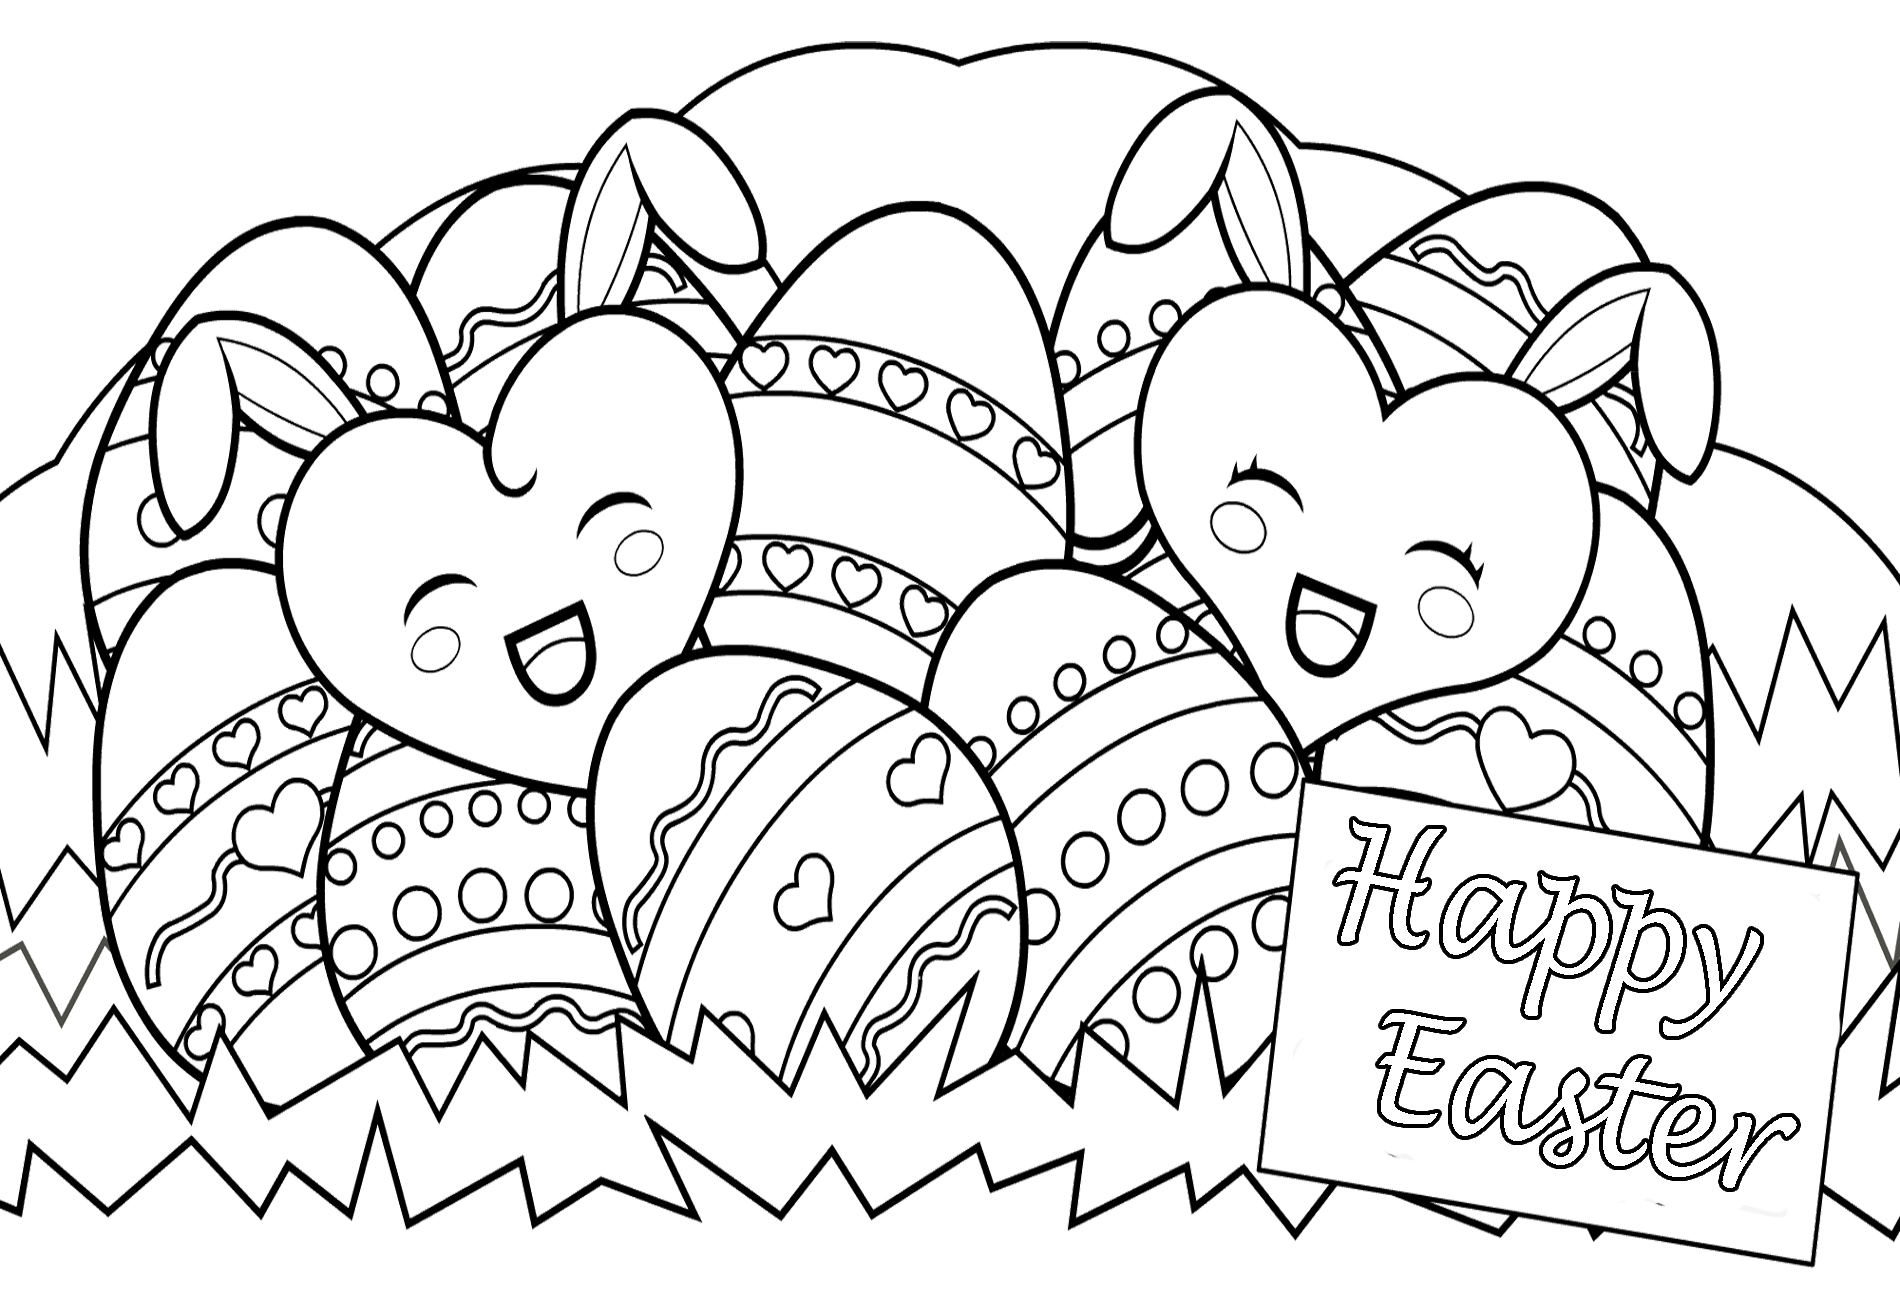 Happy Easter Eggs Coloring Print PagesHappy Easter Eggs Coloring Print Pages